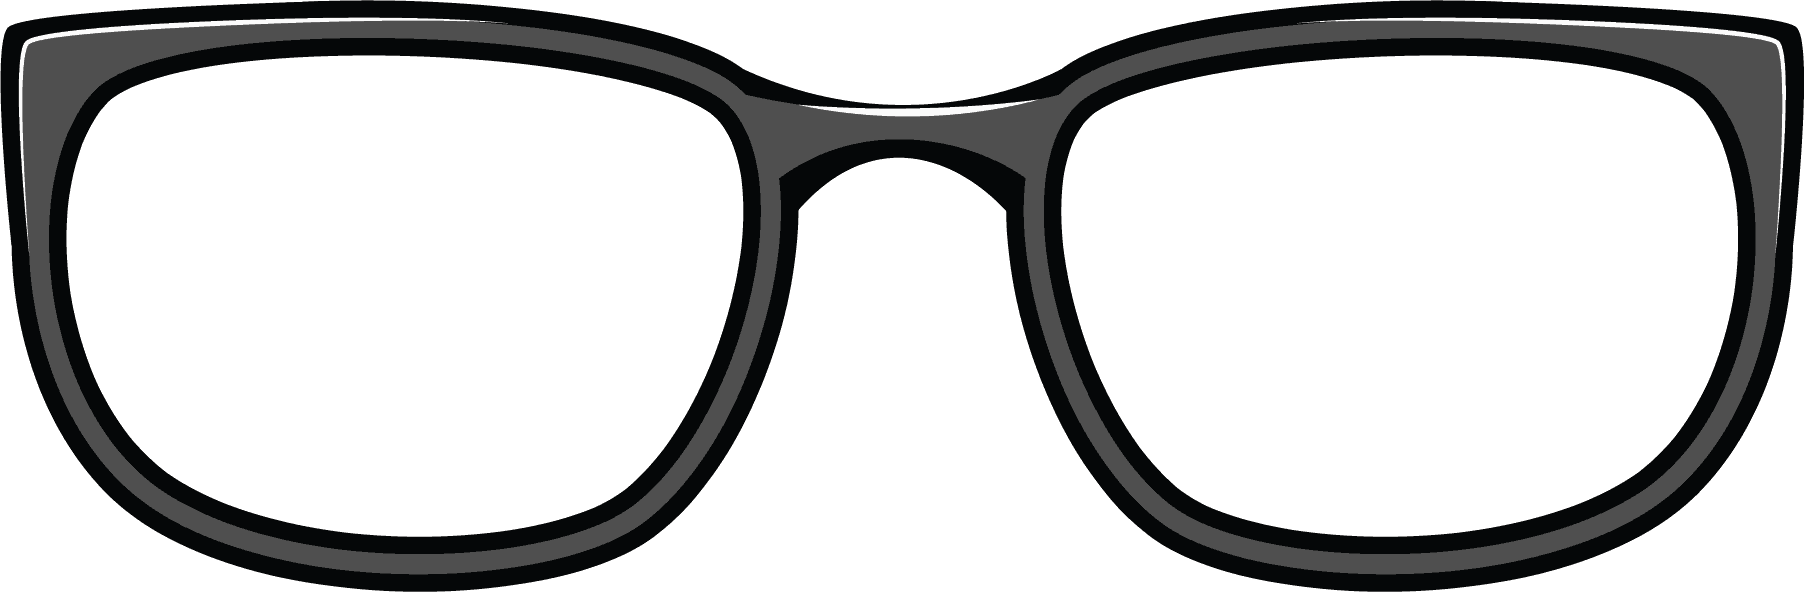 1804x592 Free Clipart Goggles Eyes